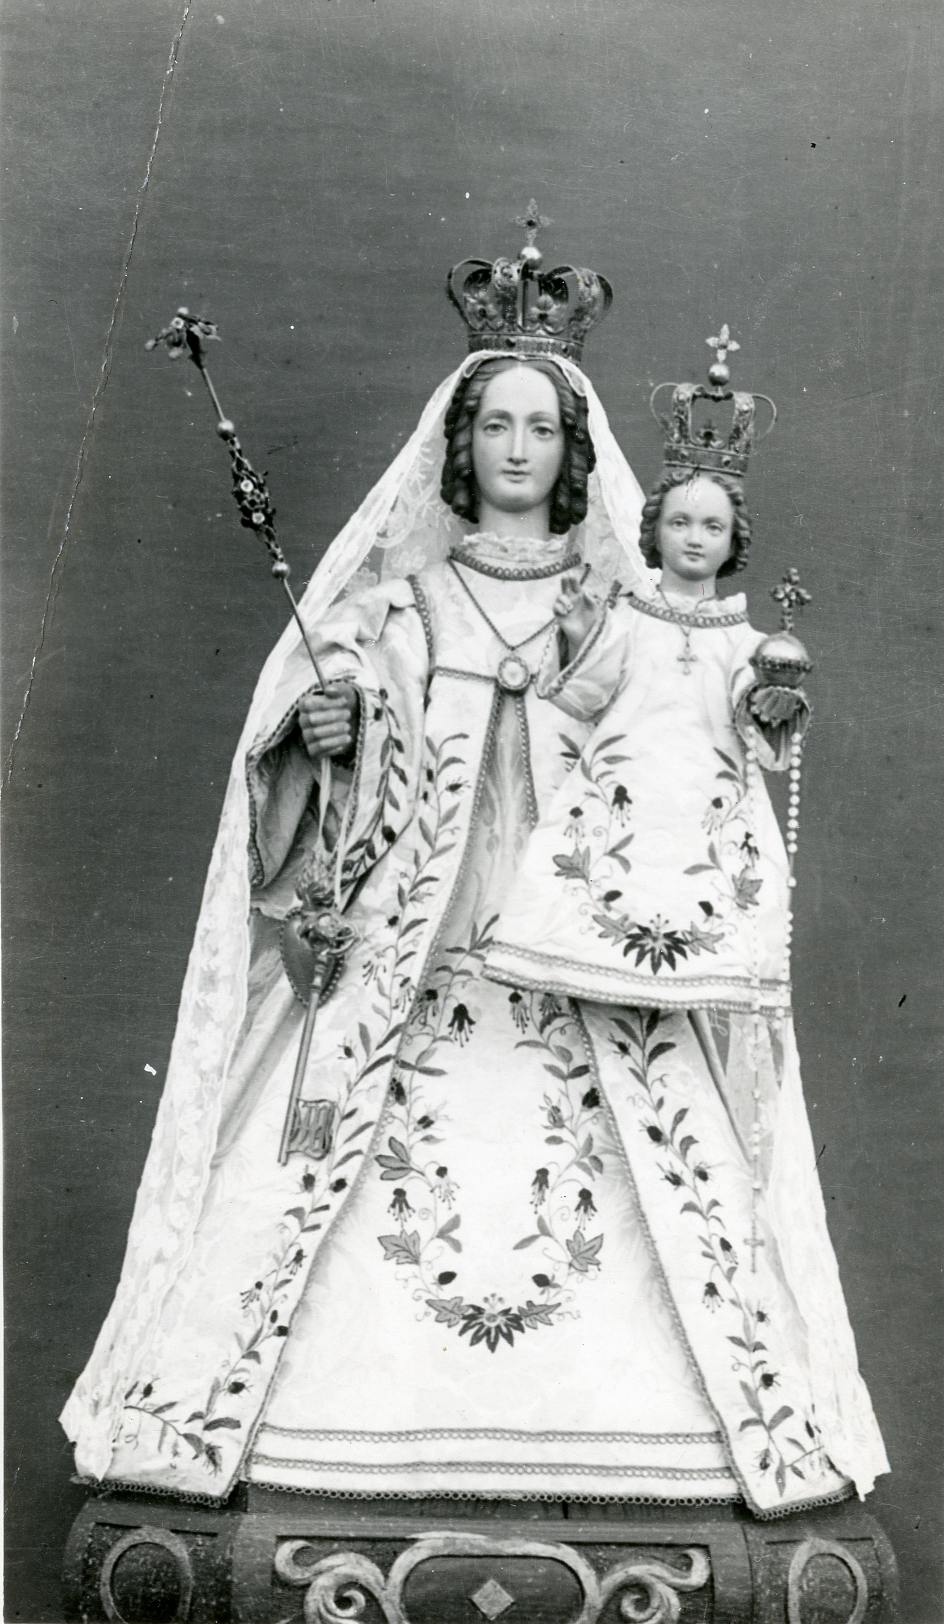 The statue of Our Lady of Consolation in 1875.